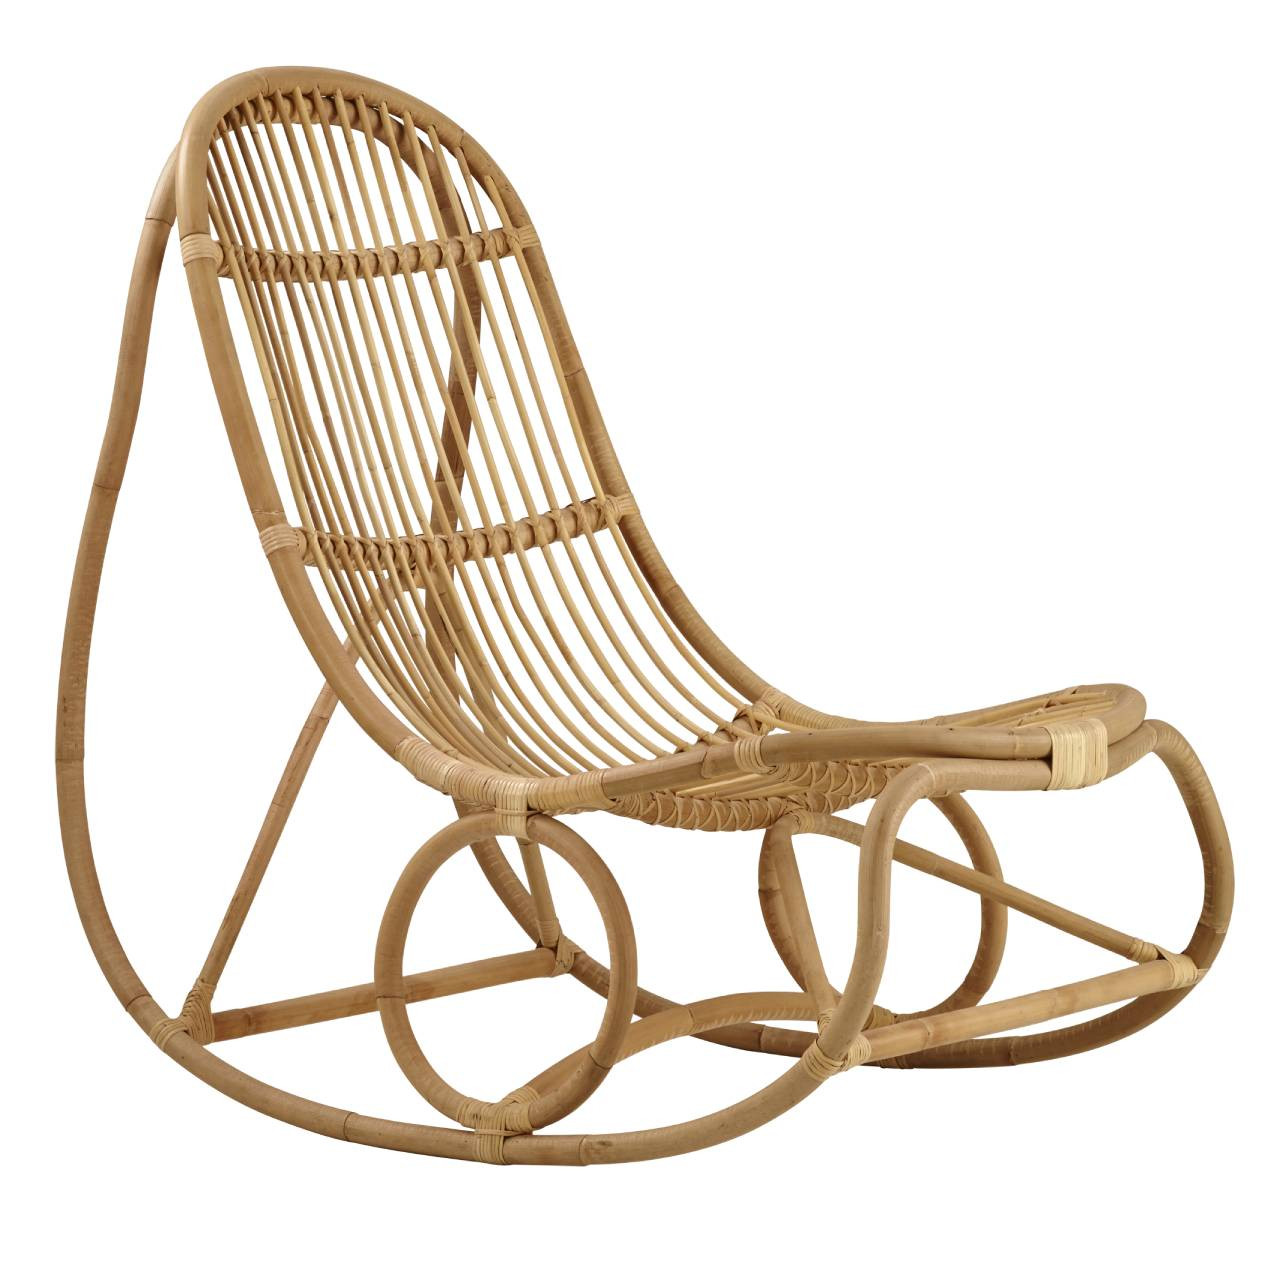 Tremendous Nanna Ditzel Nanny Rocking Chair Caraccident5 Cool Chair Designs And Ideas Caraccident5Info